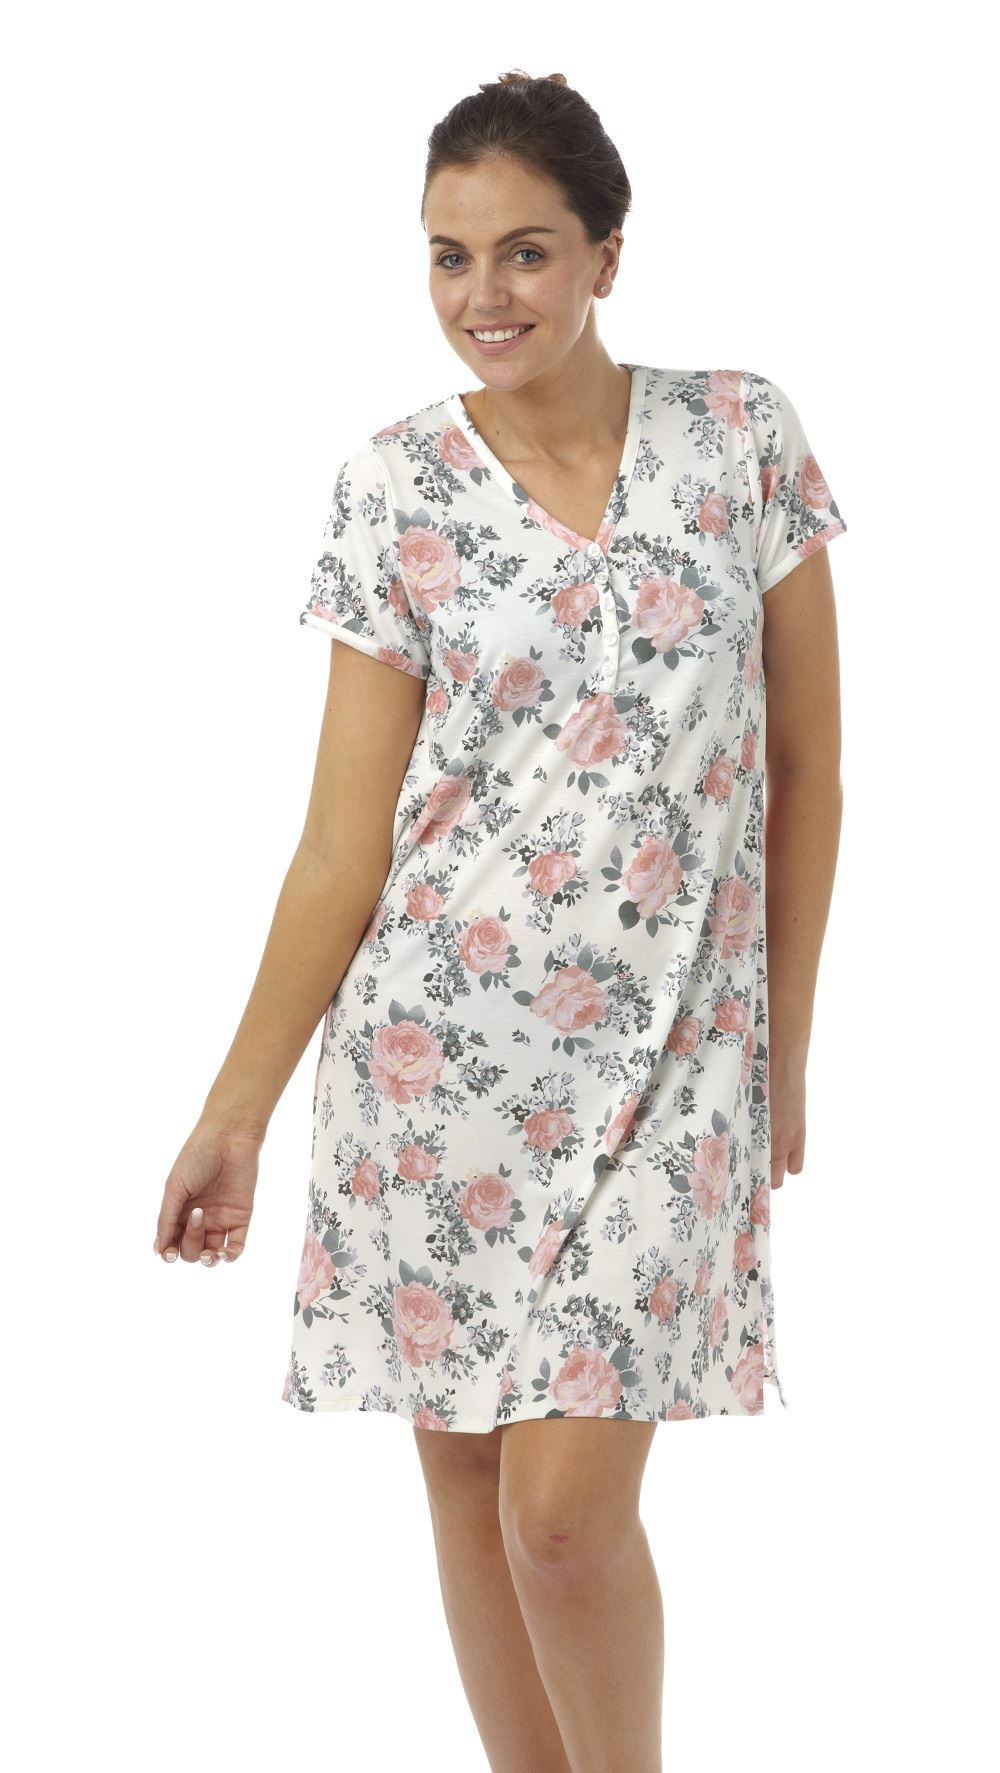 Find great deals on eBay for Plus Size Cotton Nightgowns in Sleepwear and Robes for Adult Women. Shop with confidence. Find great deals on eBay for Plus Size Cotton Nightgowns in Sleepwear and Robes for Adult Women. Shop with confidence. Skip to main content. eBay: Shop by .